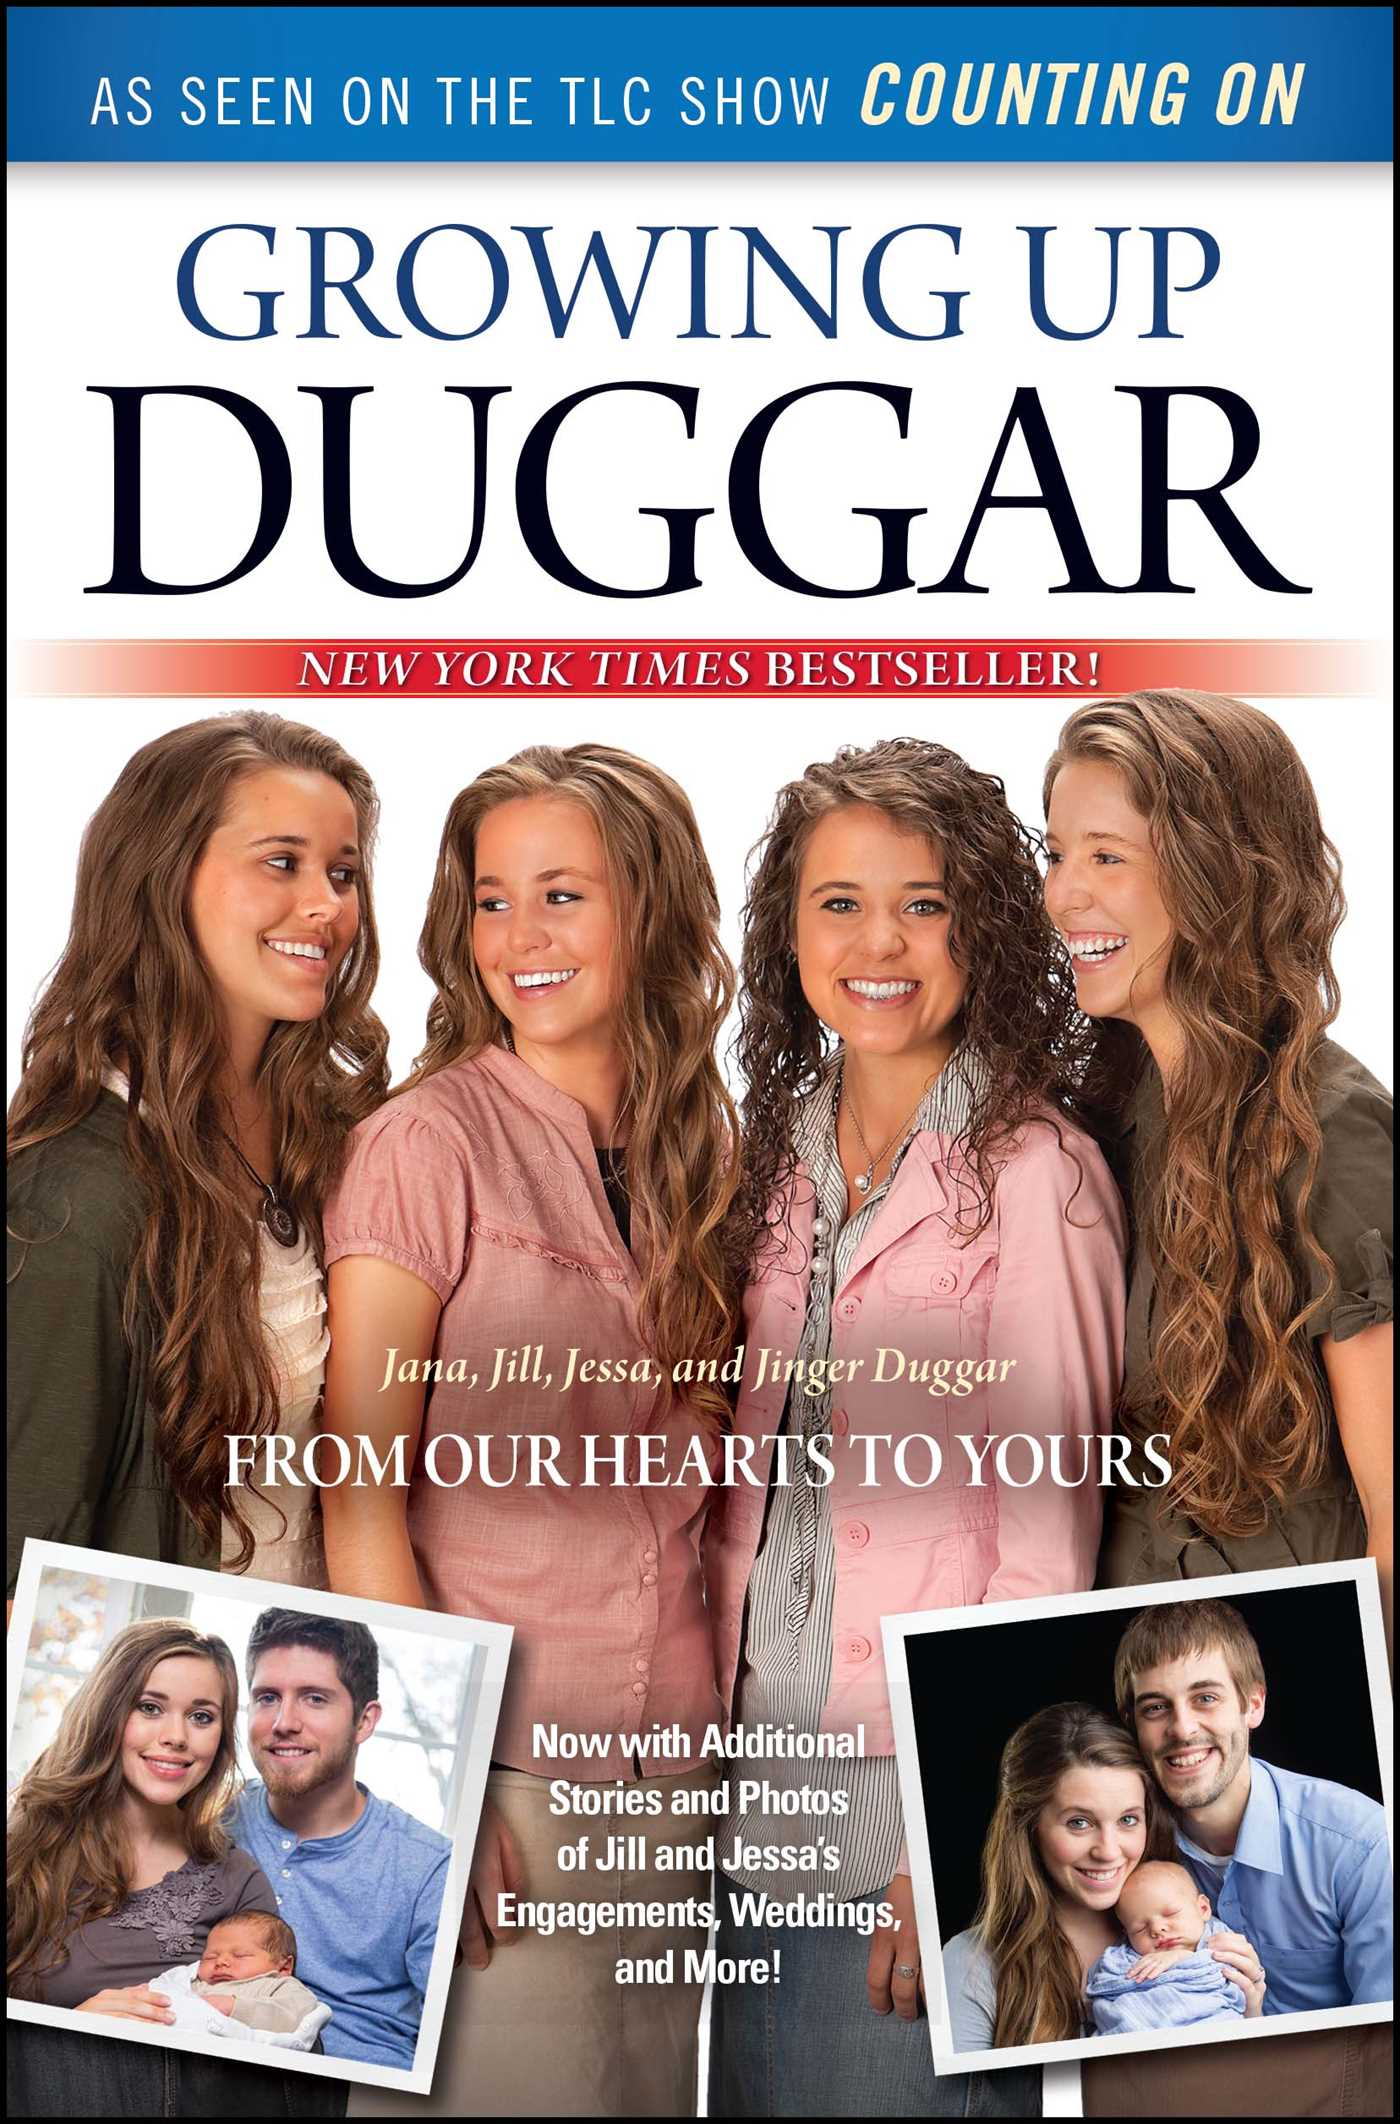 Growing up duggar 9781451679182 hr